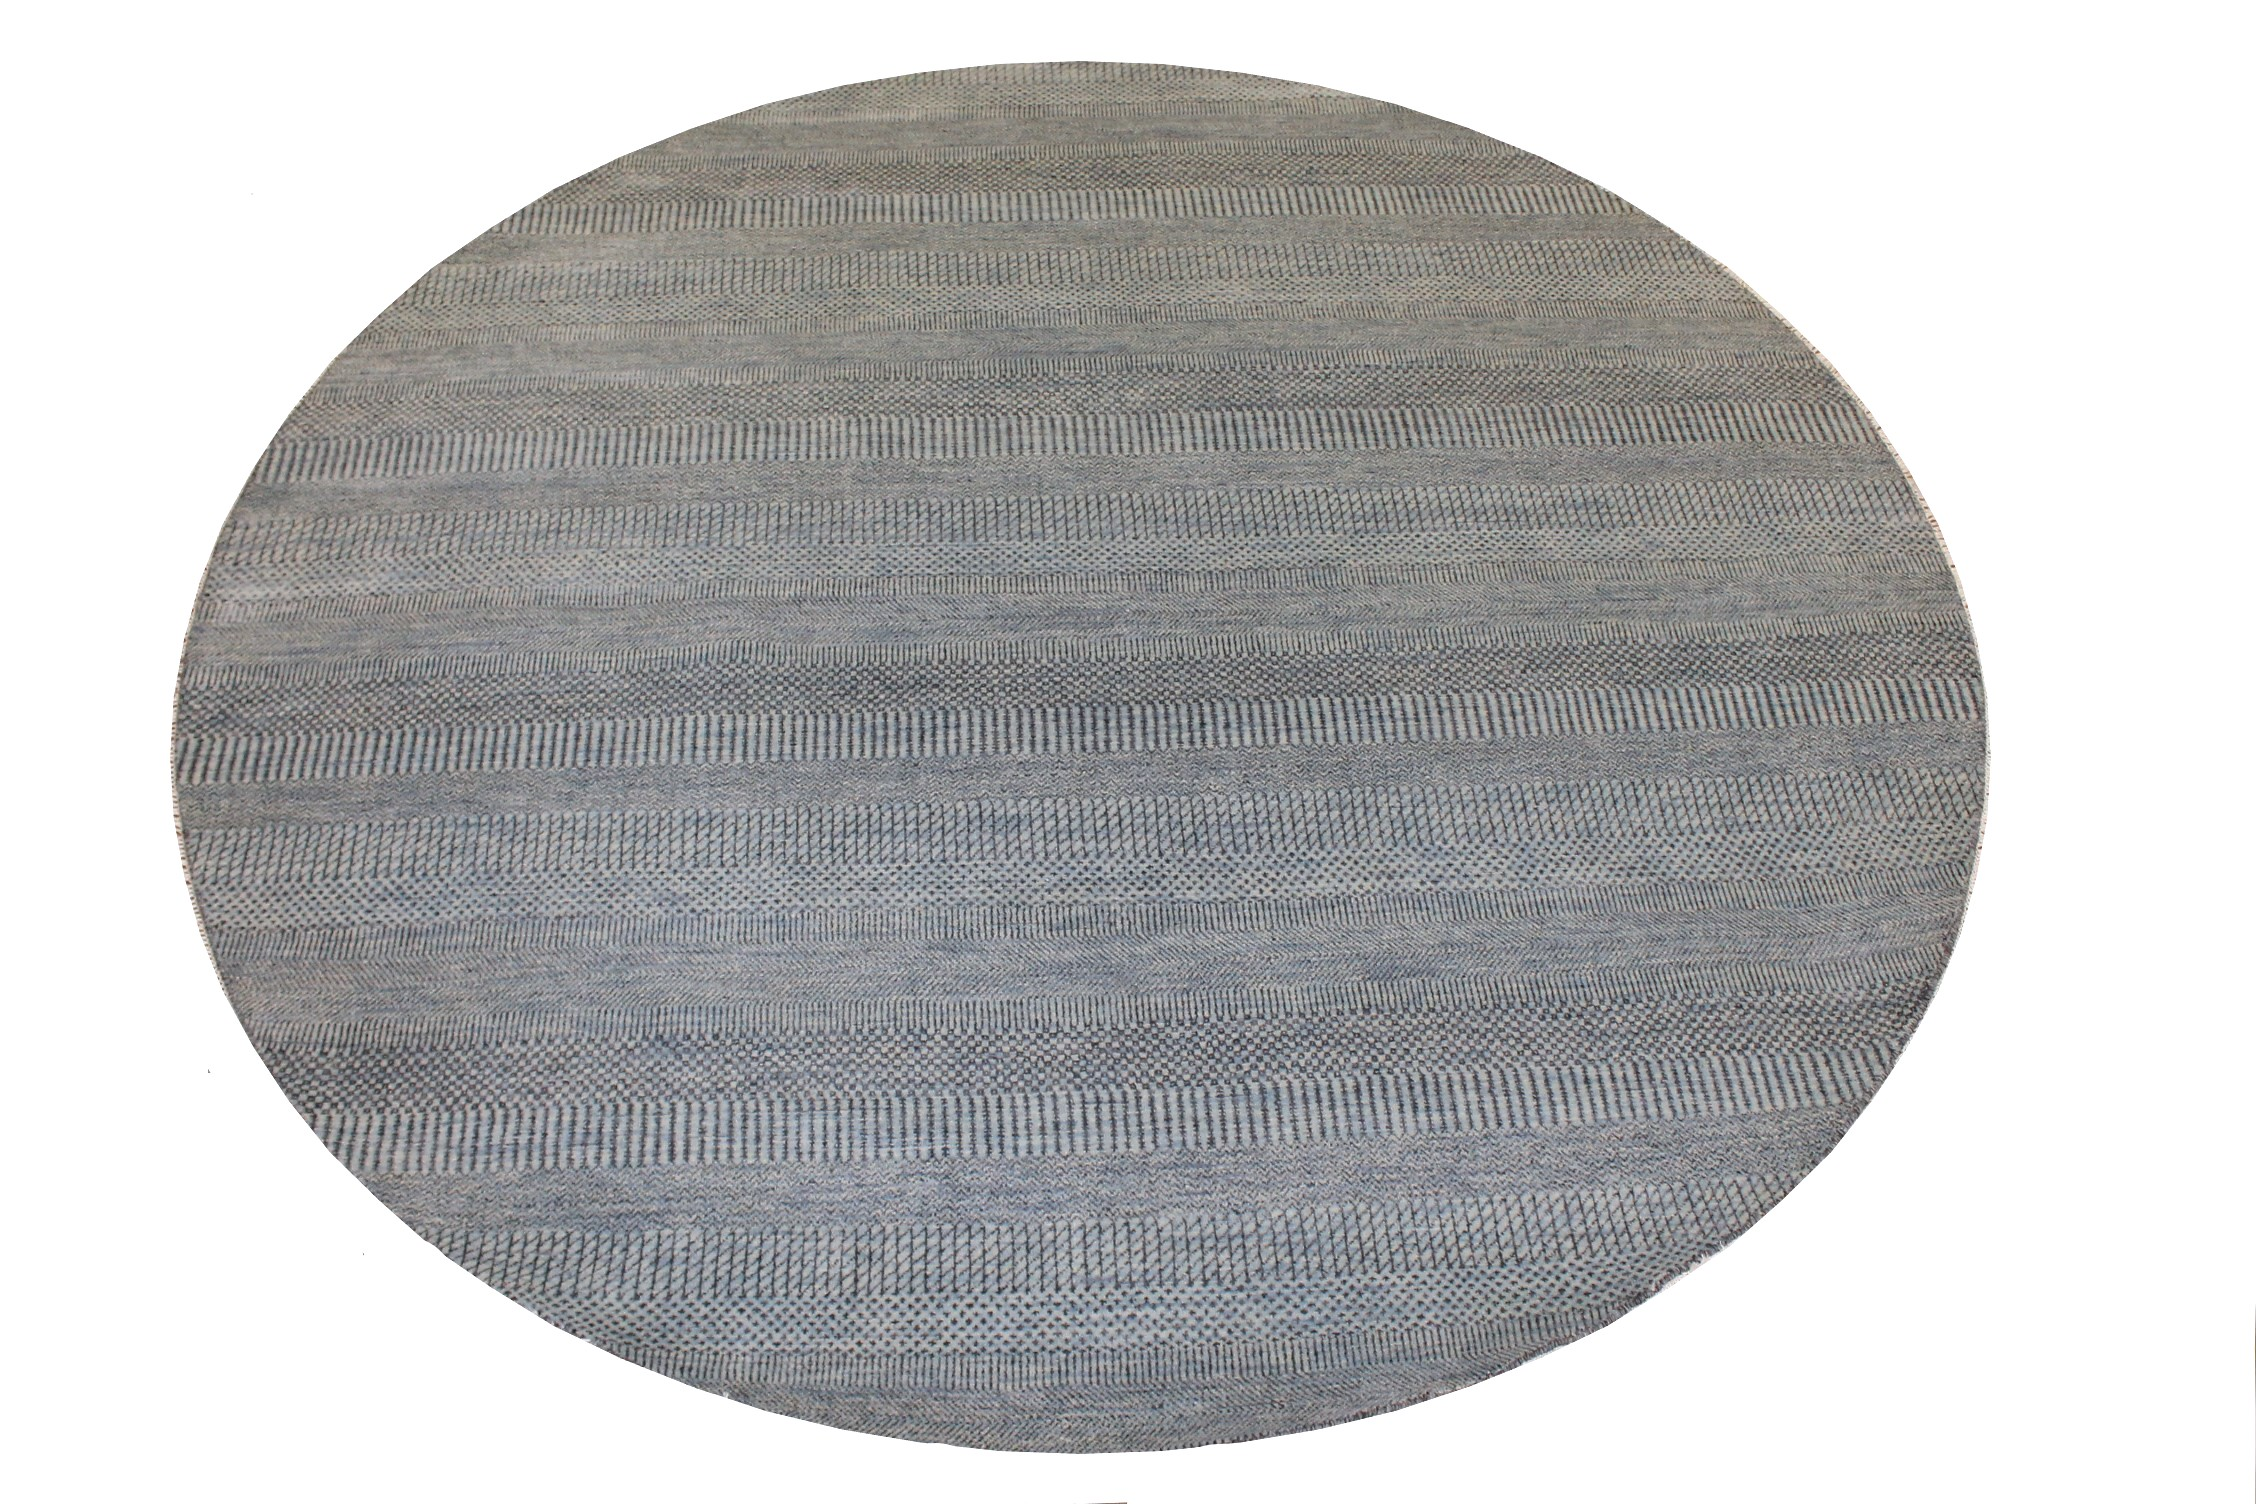 8 ft. Round & Square Casual Hand Knotted Wool & Viscose Area Rug - MR024925